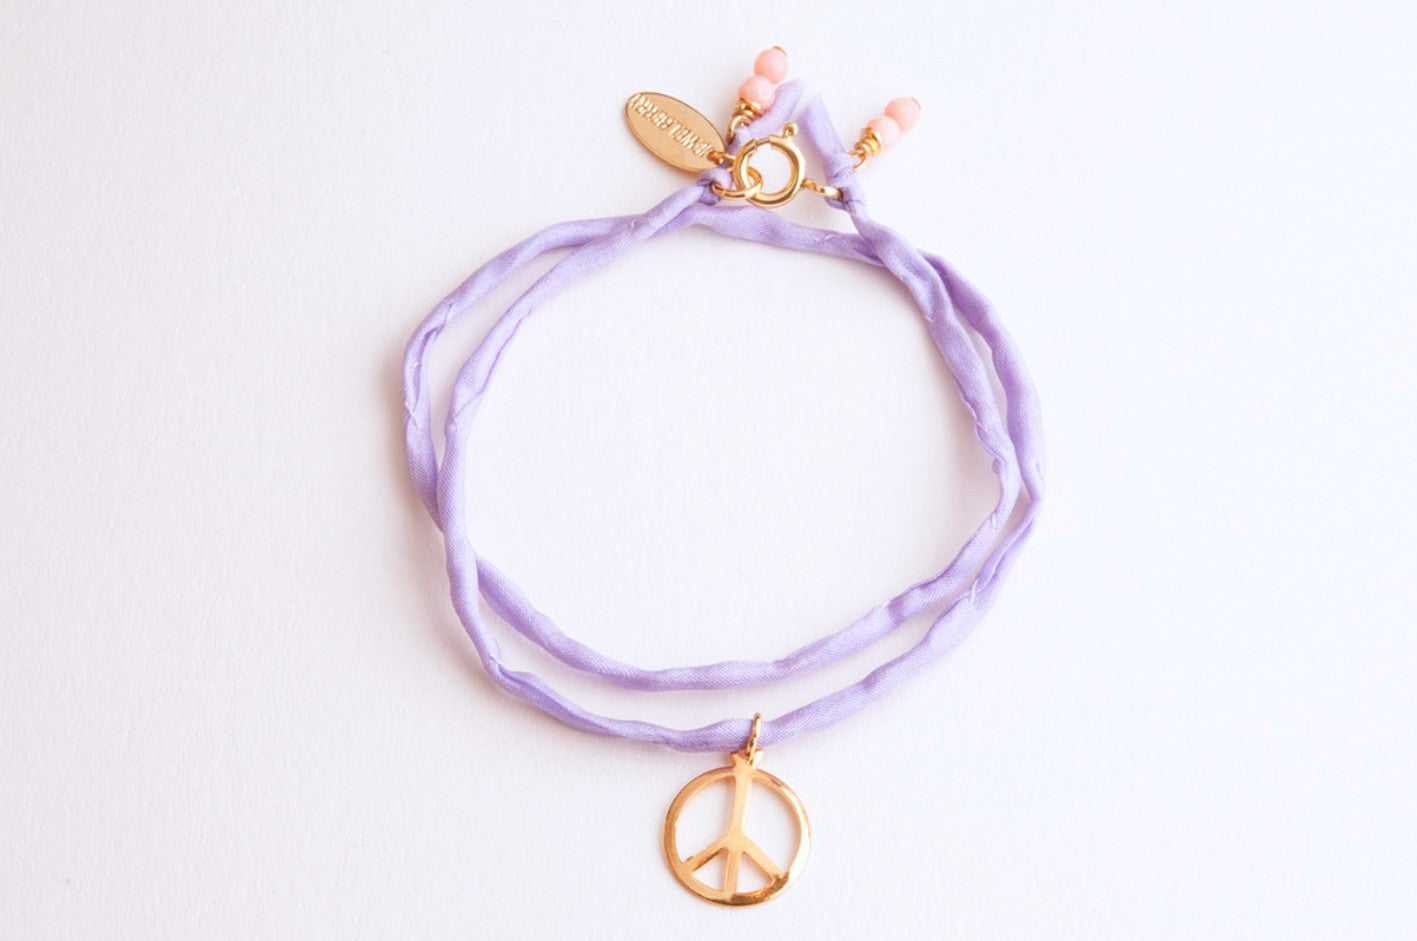 ....Charity Armband Jewelberry for Almaterra PEACE vergoldet..Charity Bracelet Jewelberry for Almaterra PEACE gold plated....